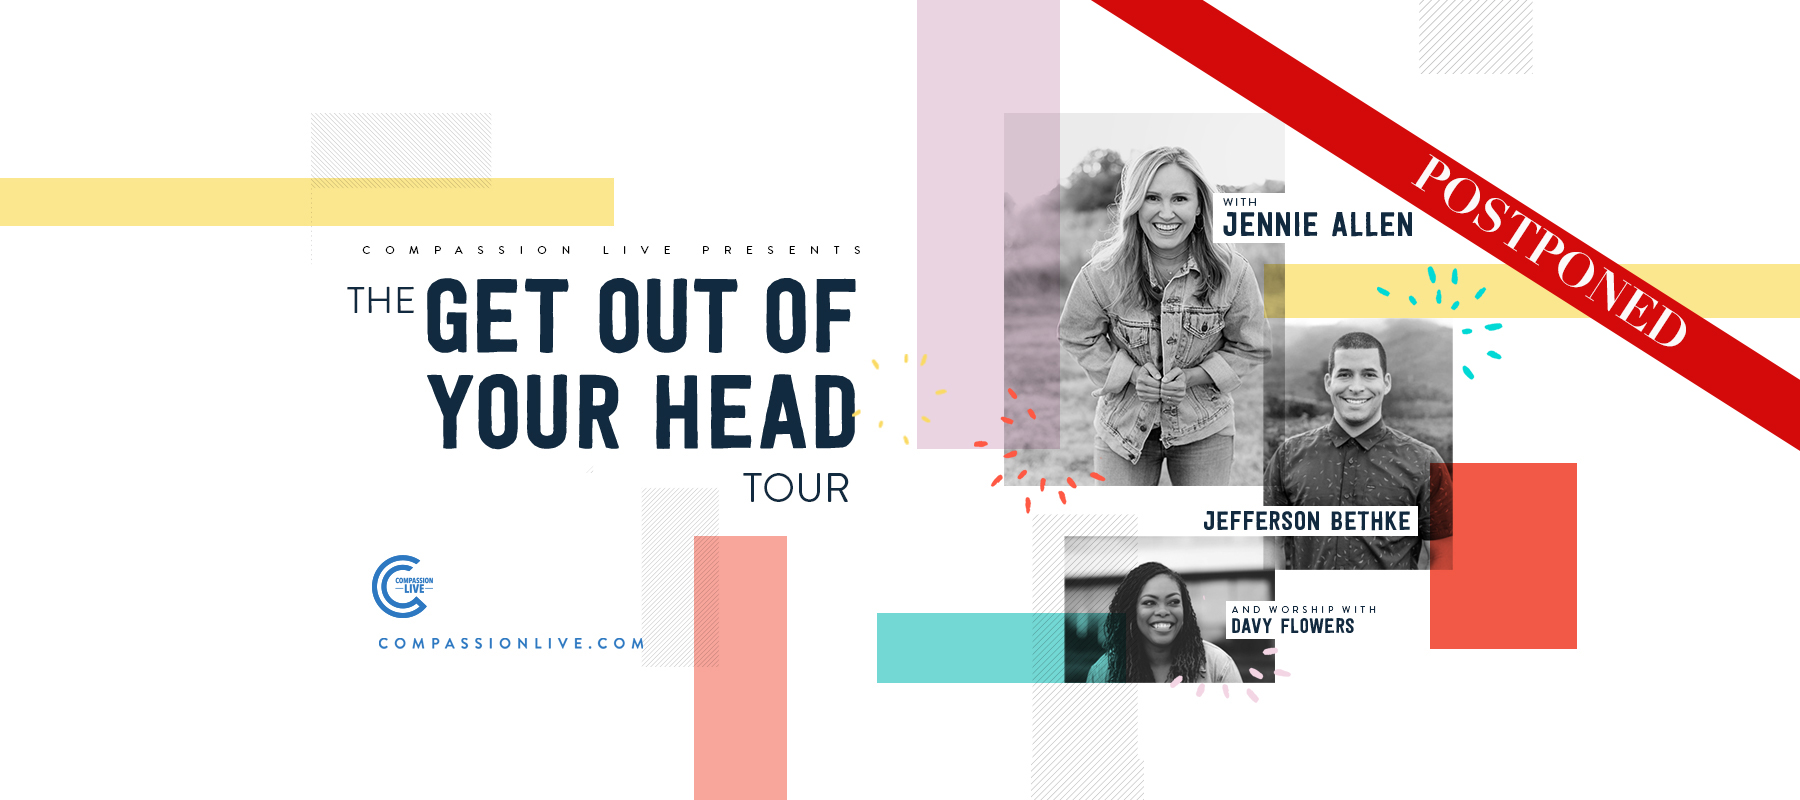 The Get Out of Your Head Tour with Jennie Allen, Jefferson Bethke, and Worship with Davy Flowers logo